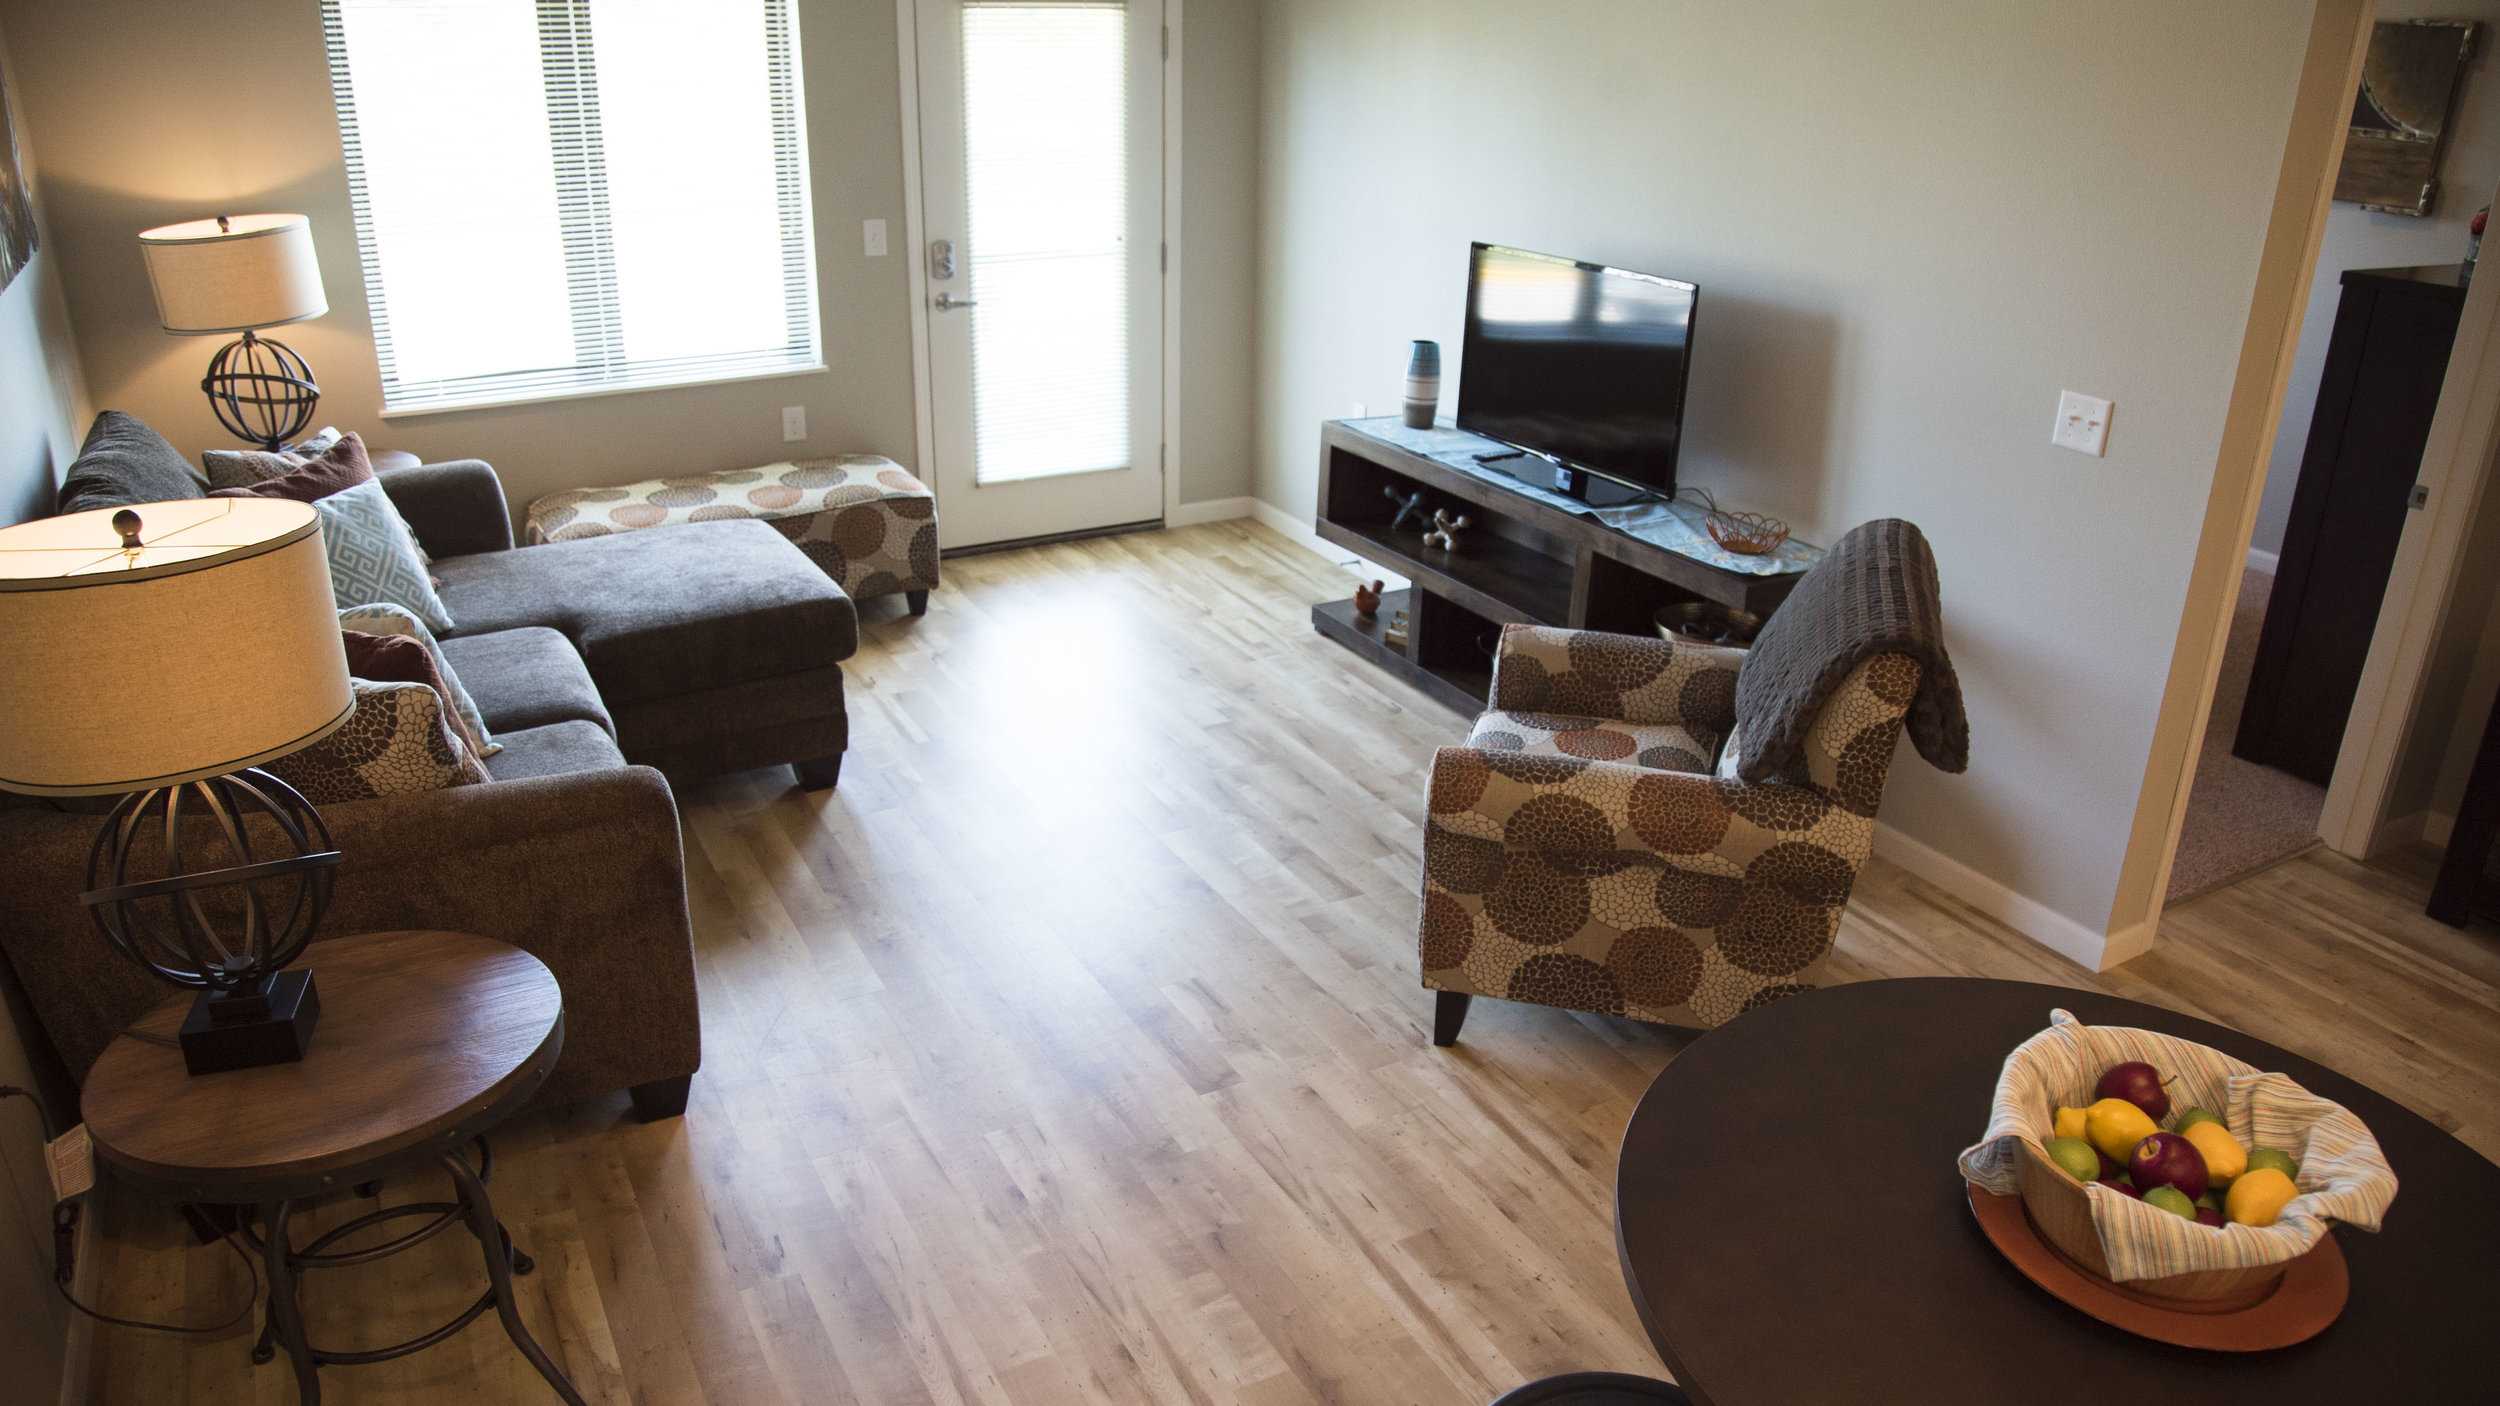 04-Faux Wood Flooring Through Out the Livingroom and Kitchen.jpg